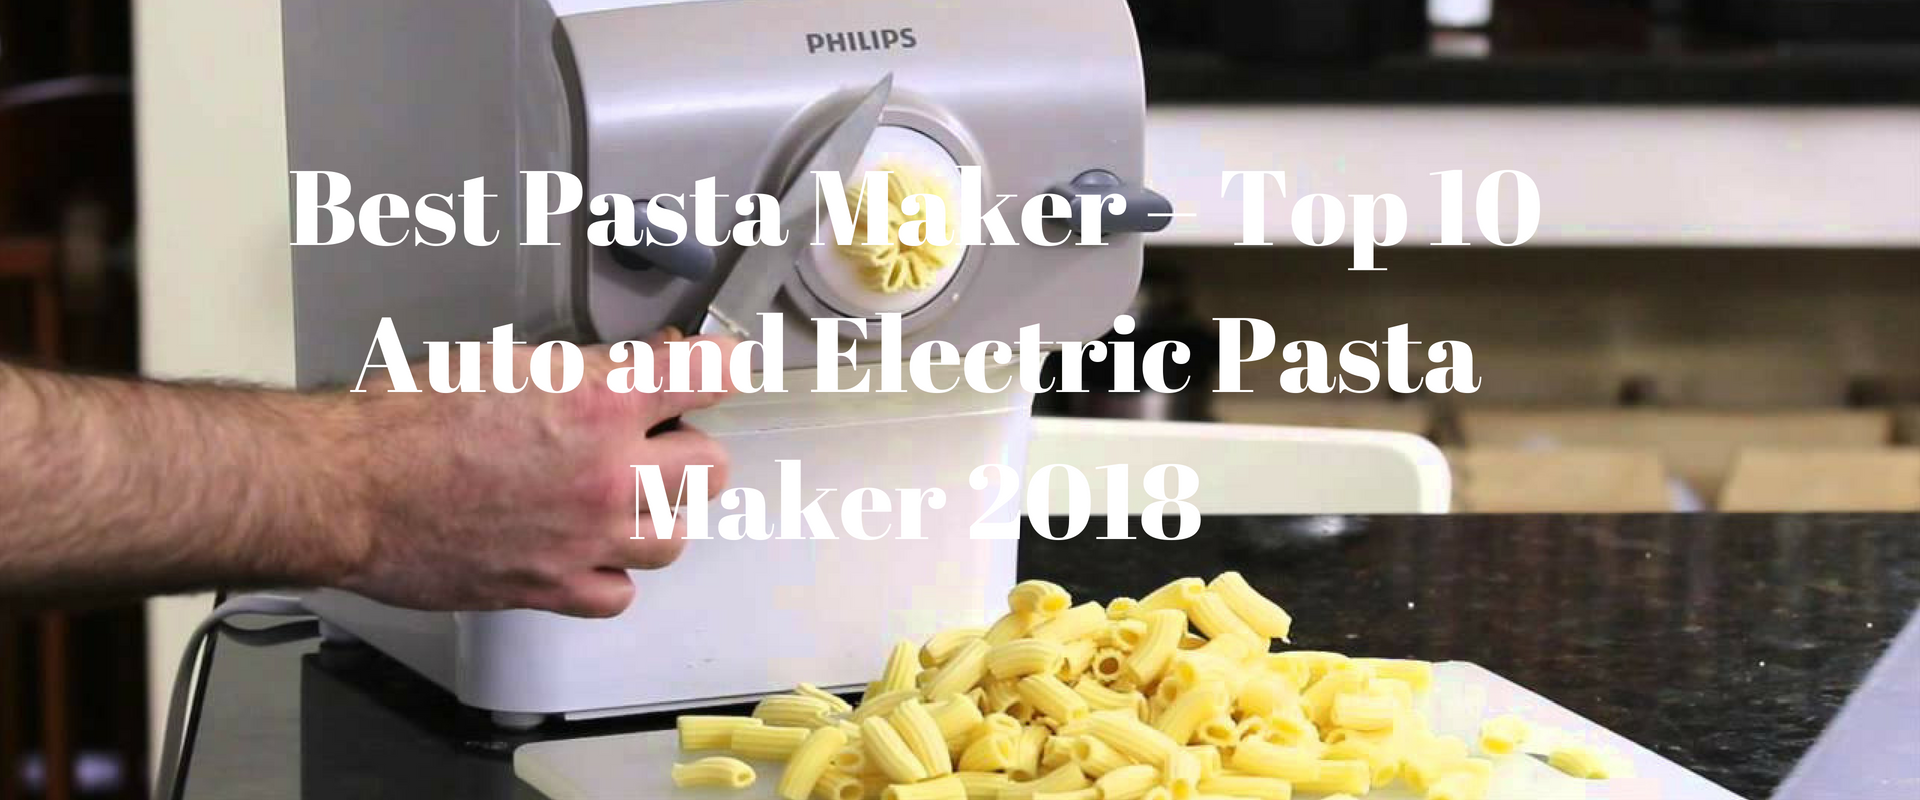 best pasta maker top 10 auto and electric pasta maker 2018 rh amazingmachines info Ampia Pasta Machine Manual Pasta Maker Machine Gun